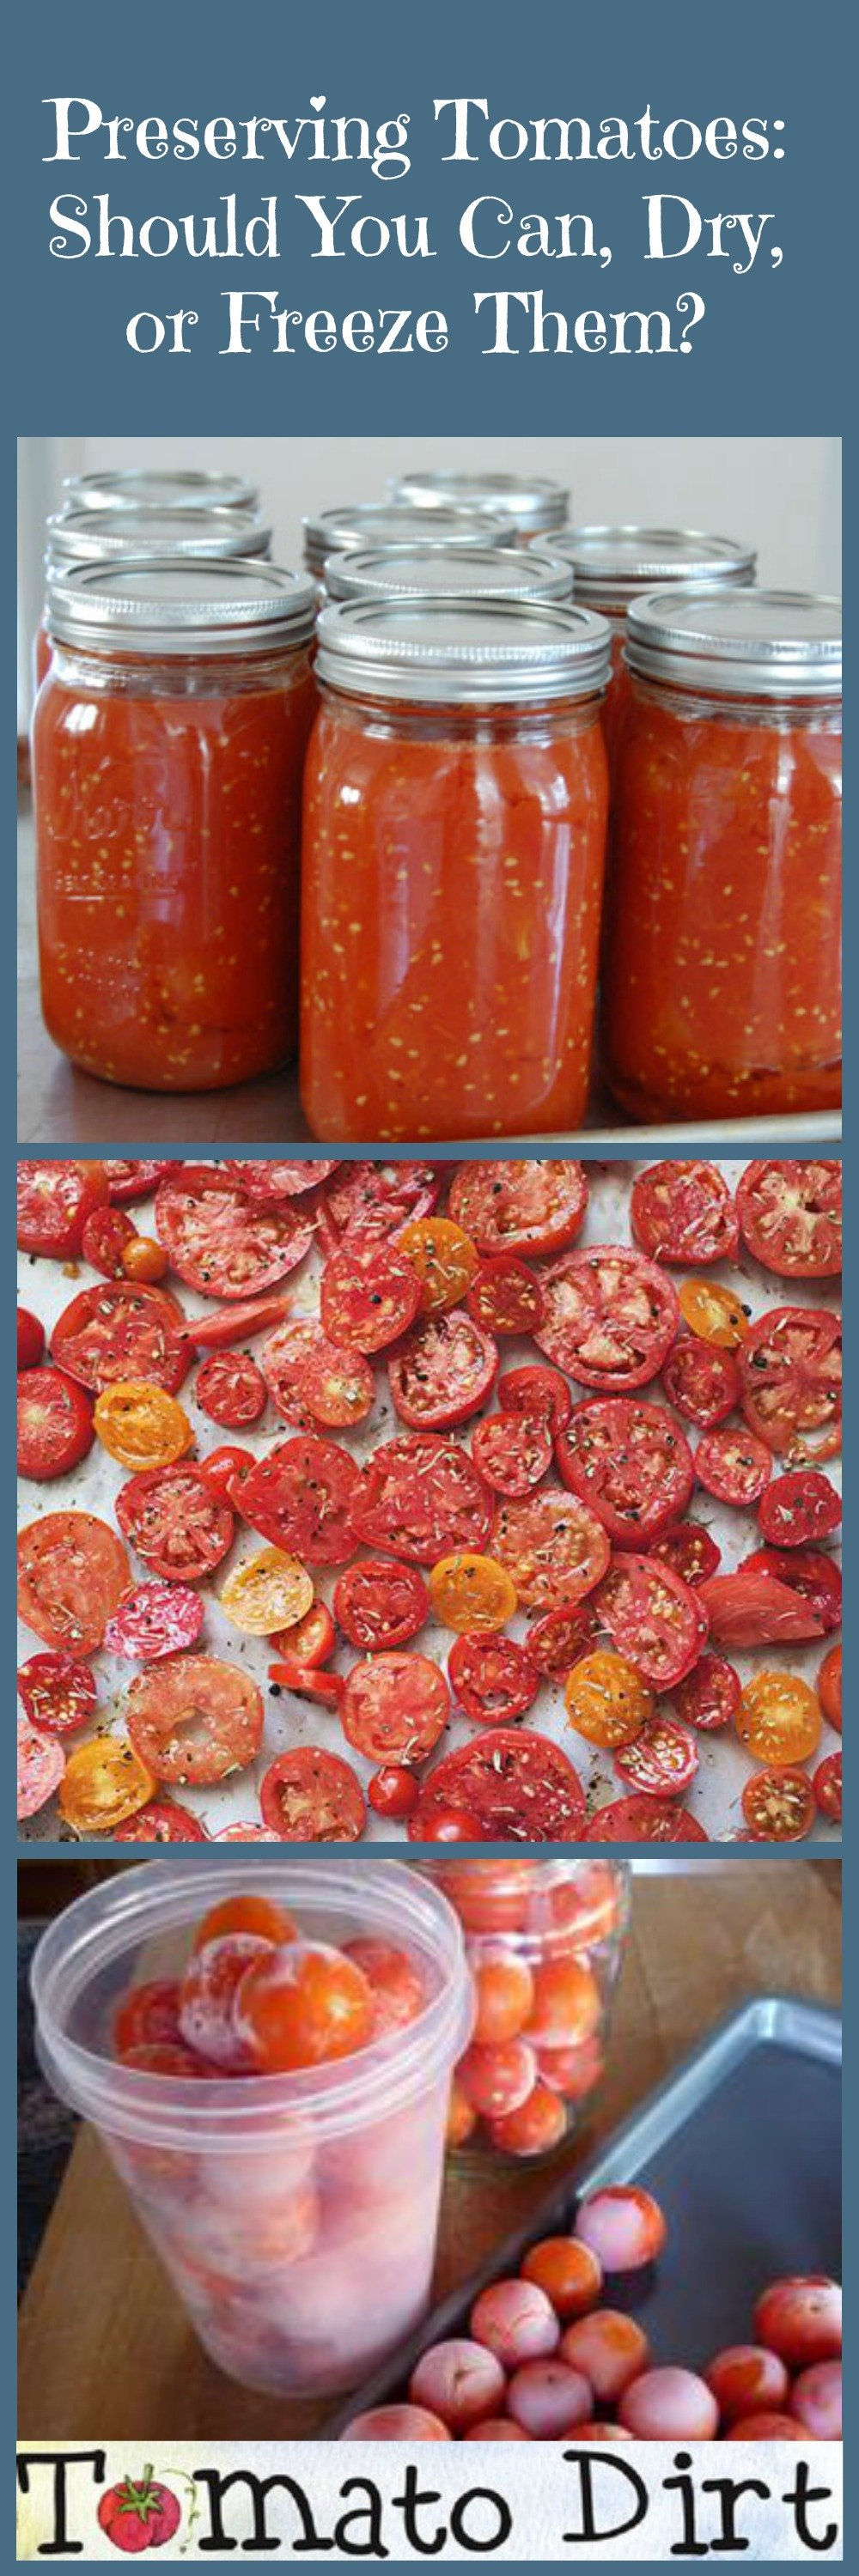 Preserving Tomatoes: should I can, dry, or freeze them? Benefits and drawbacks of each with Tomato Dirt.